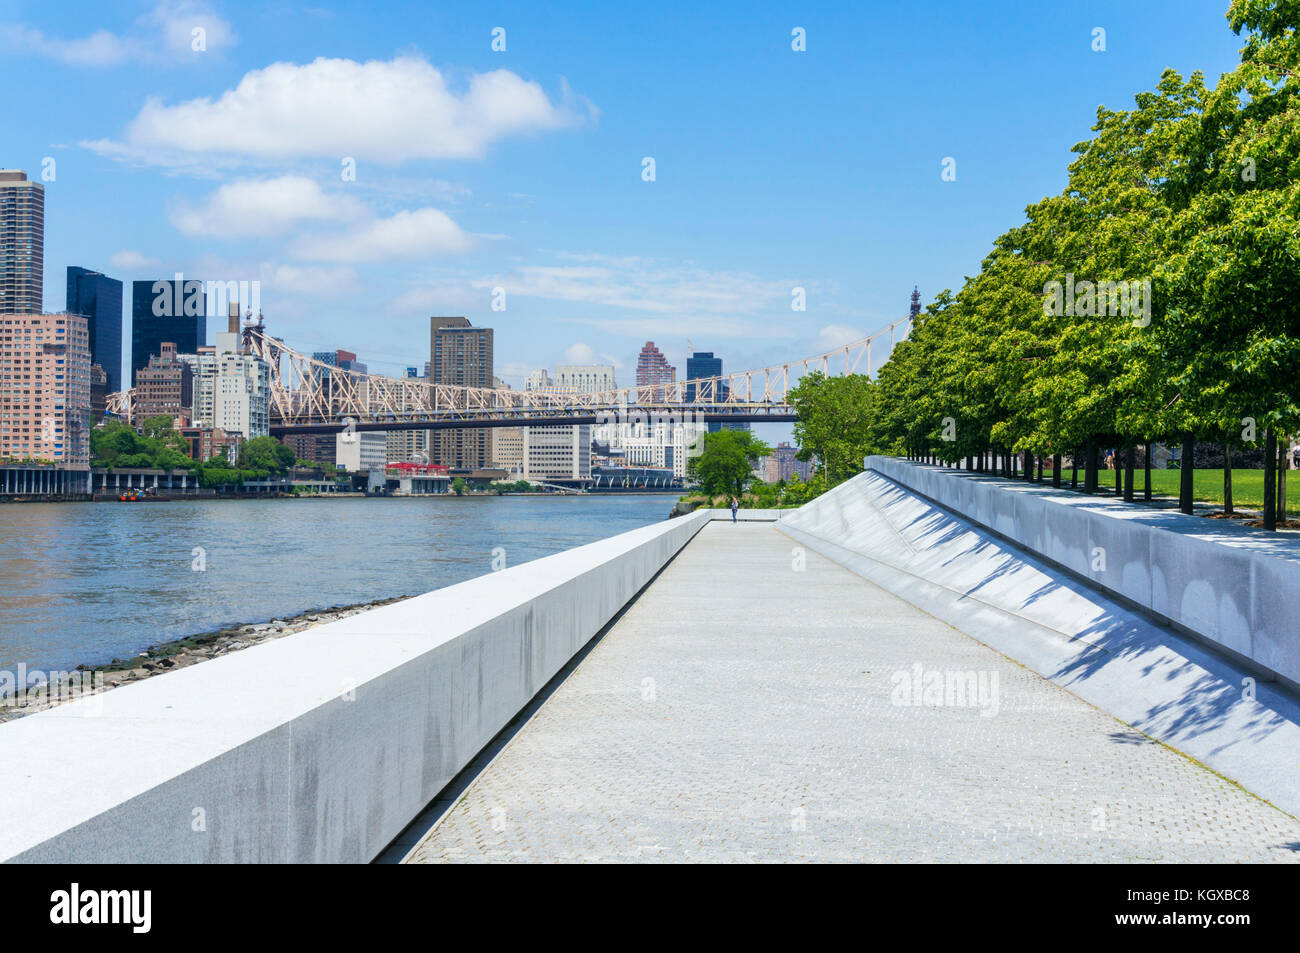 New york usa new york ed koch Queensborough Bridge over Roosevelt Island and the east river connecting Queens with - Stock Image